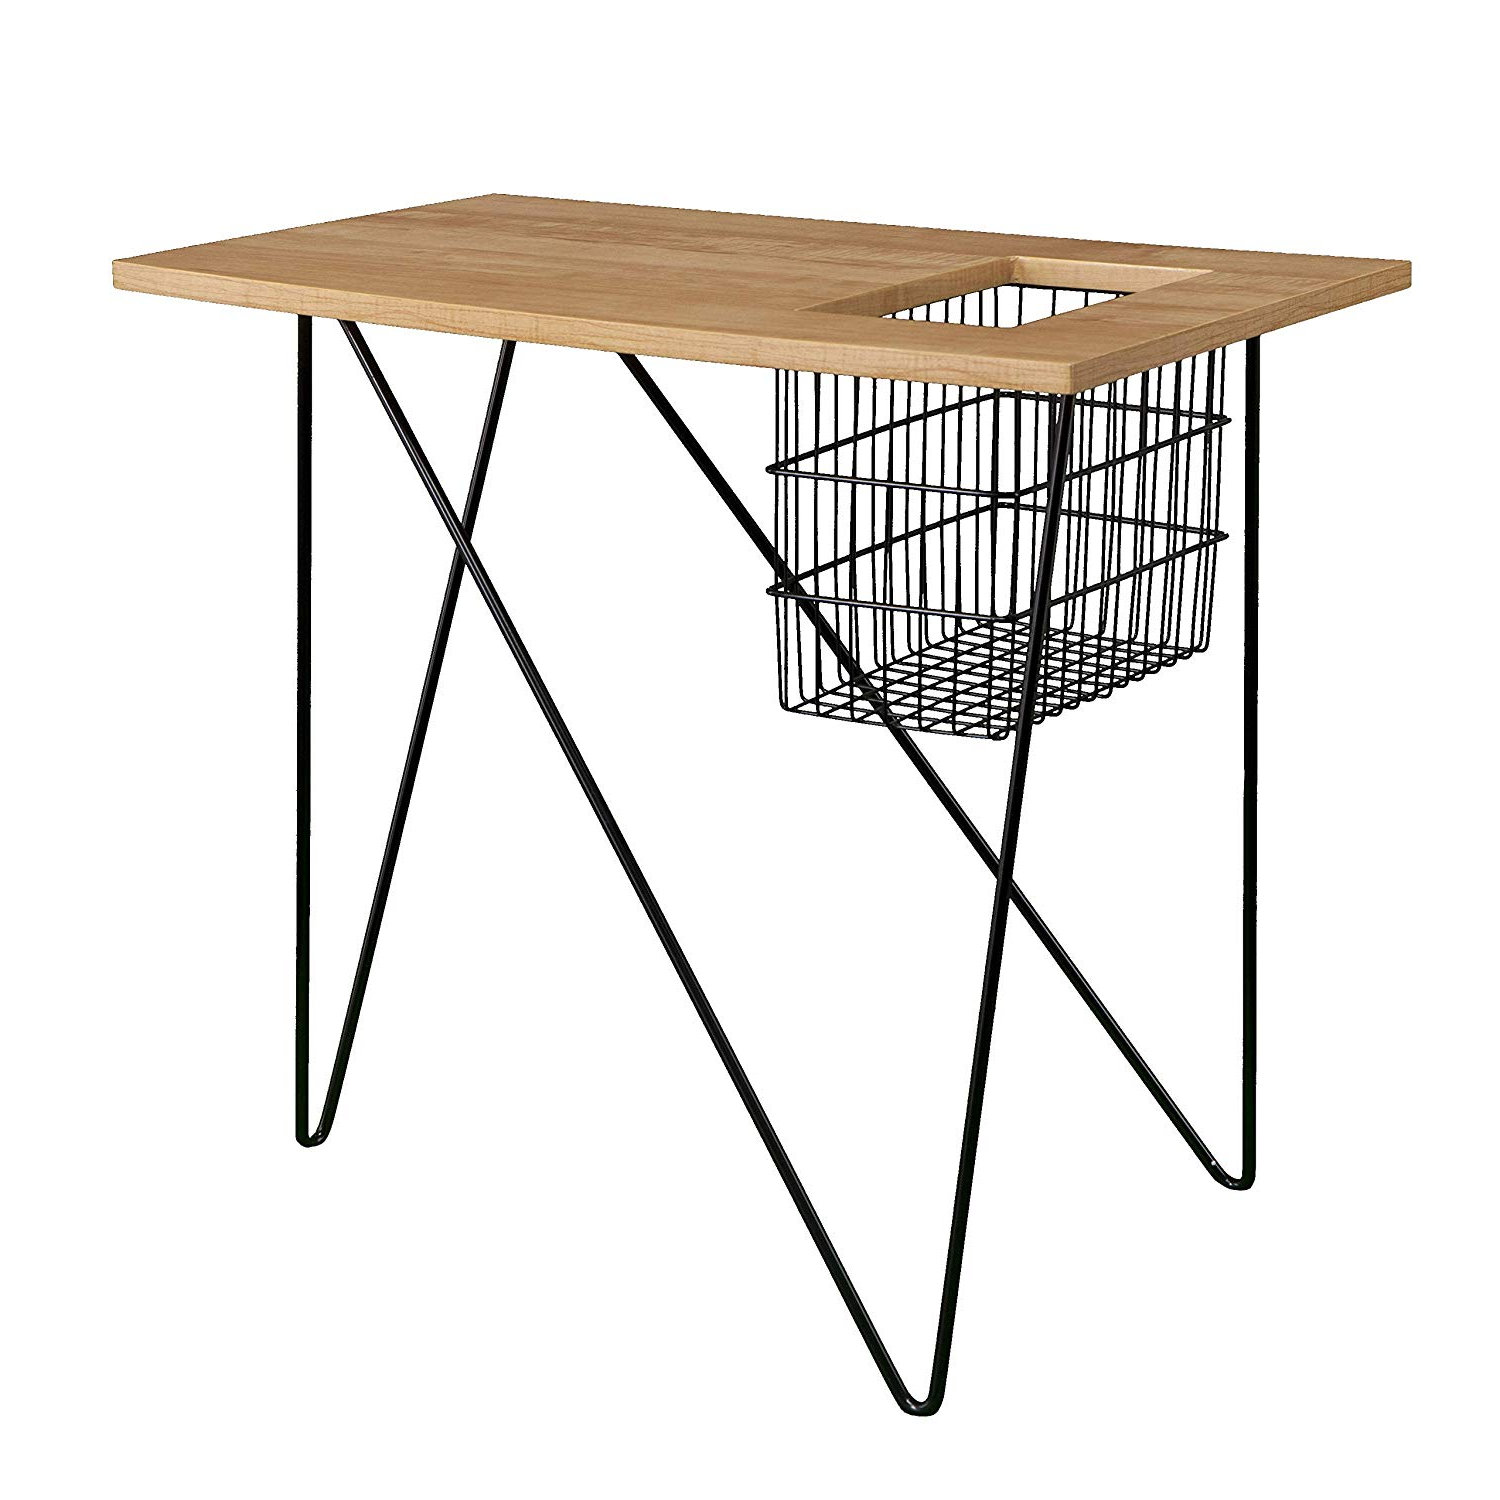 Most Popular Acacia Dining Tables With Black Rocket Legs Pertaining To Amazon: Southern Enterprises Amz6312Co Nyda End Table (View 20 of 30)